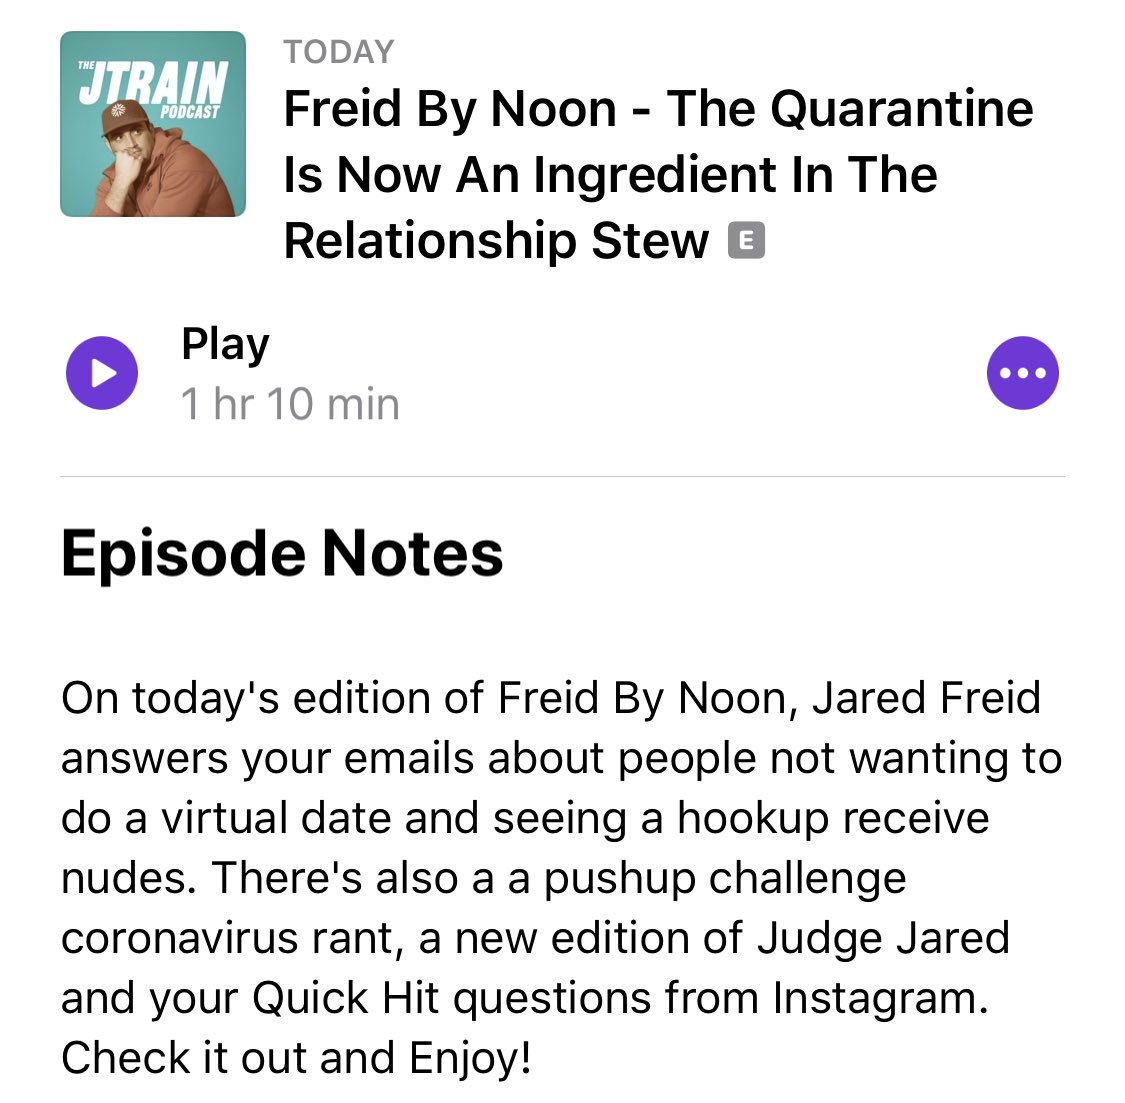 NEW @JTrainPodcast!! The Quarantine Is Now An Ingredient In The Relationship Stew >> podcasts.apple.com/us/podcast/the…